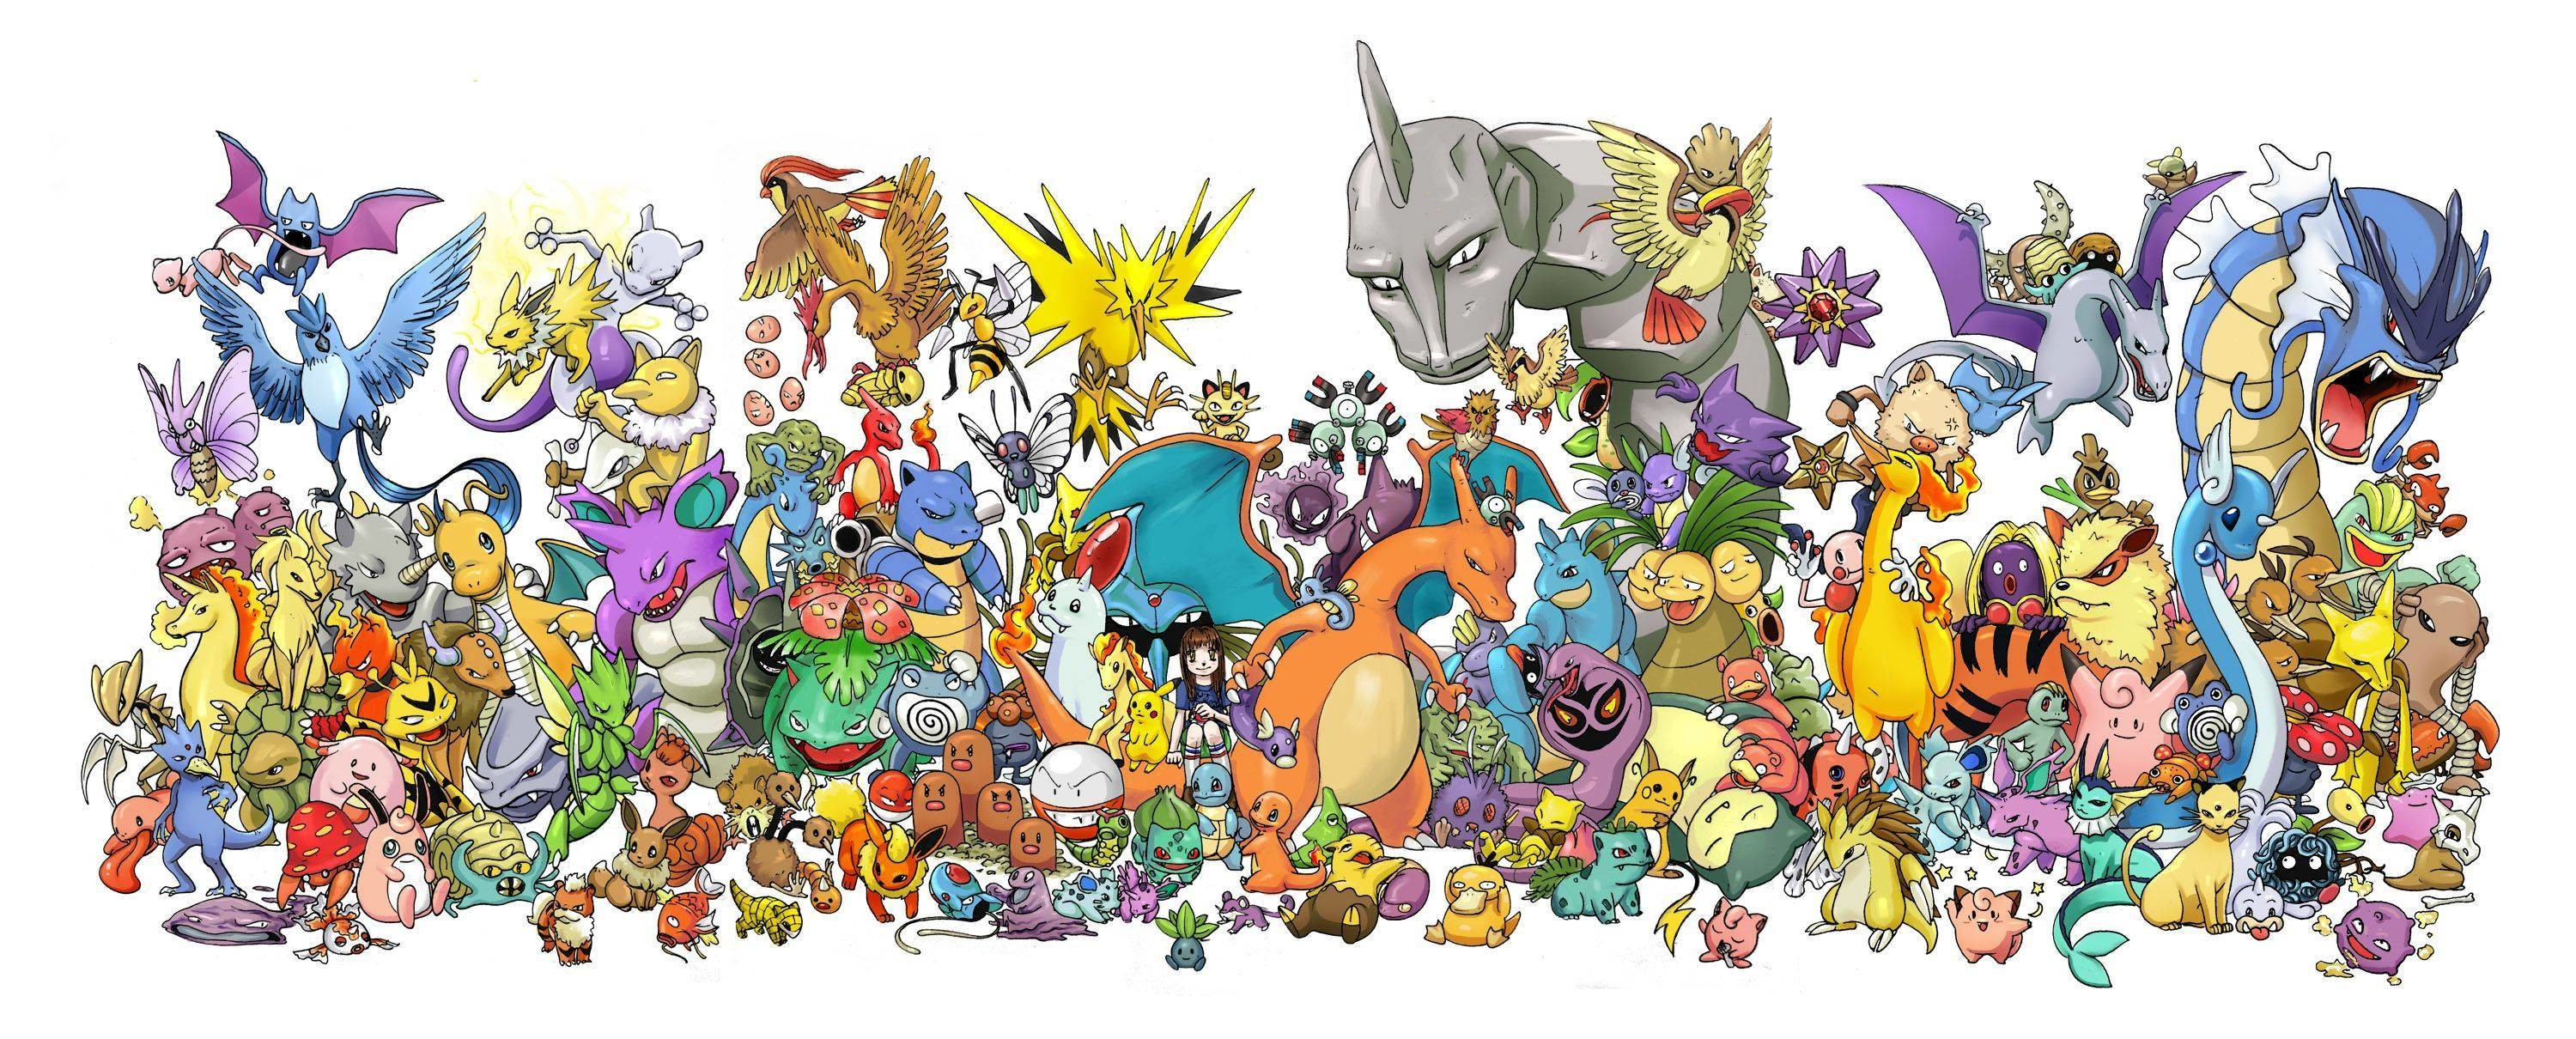 Cute Anime Wallpaper Hd Free Download All Pokemon Wallpaper 77 Images